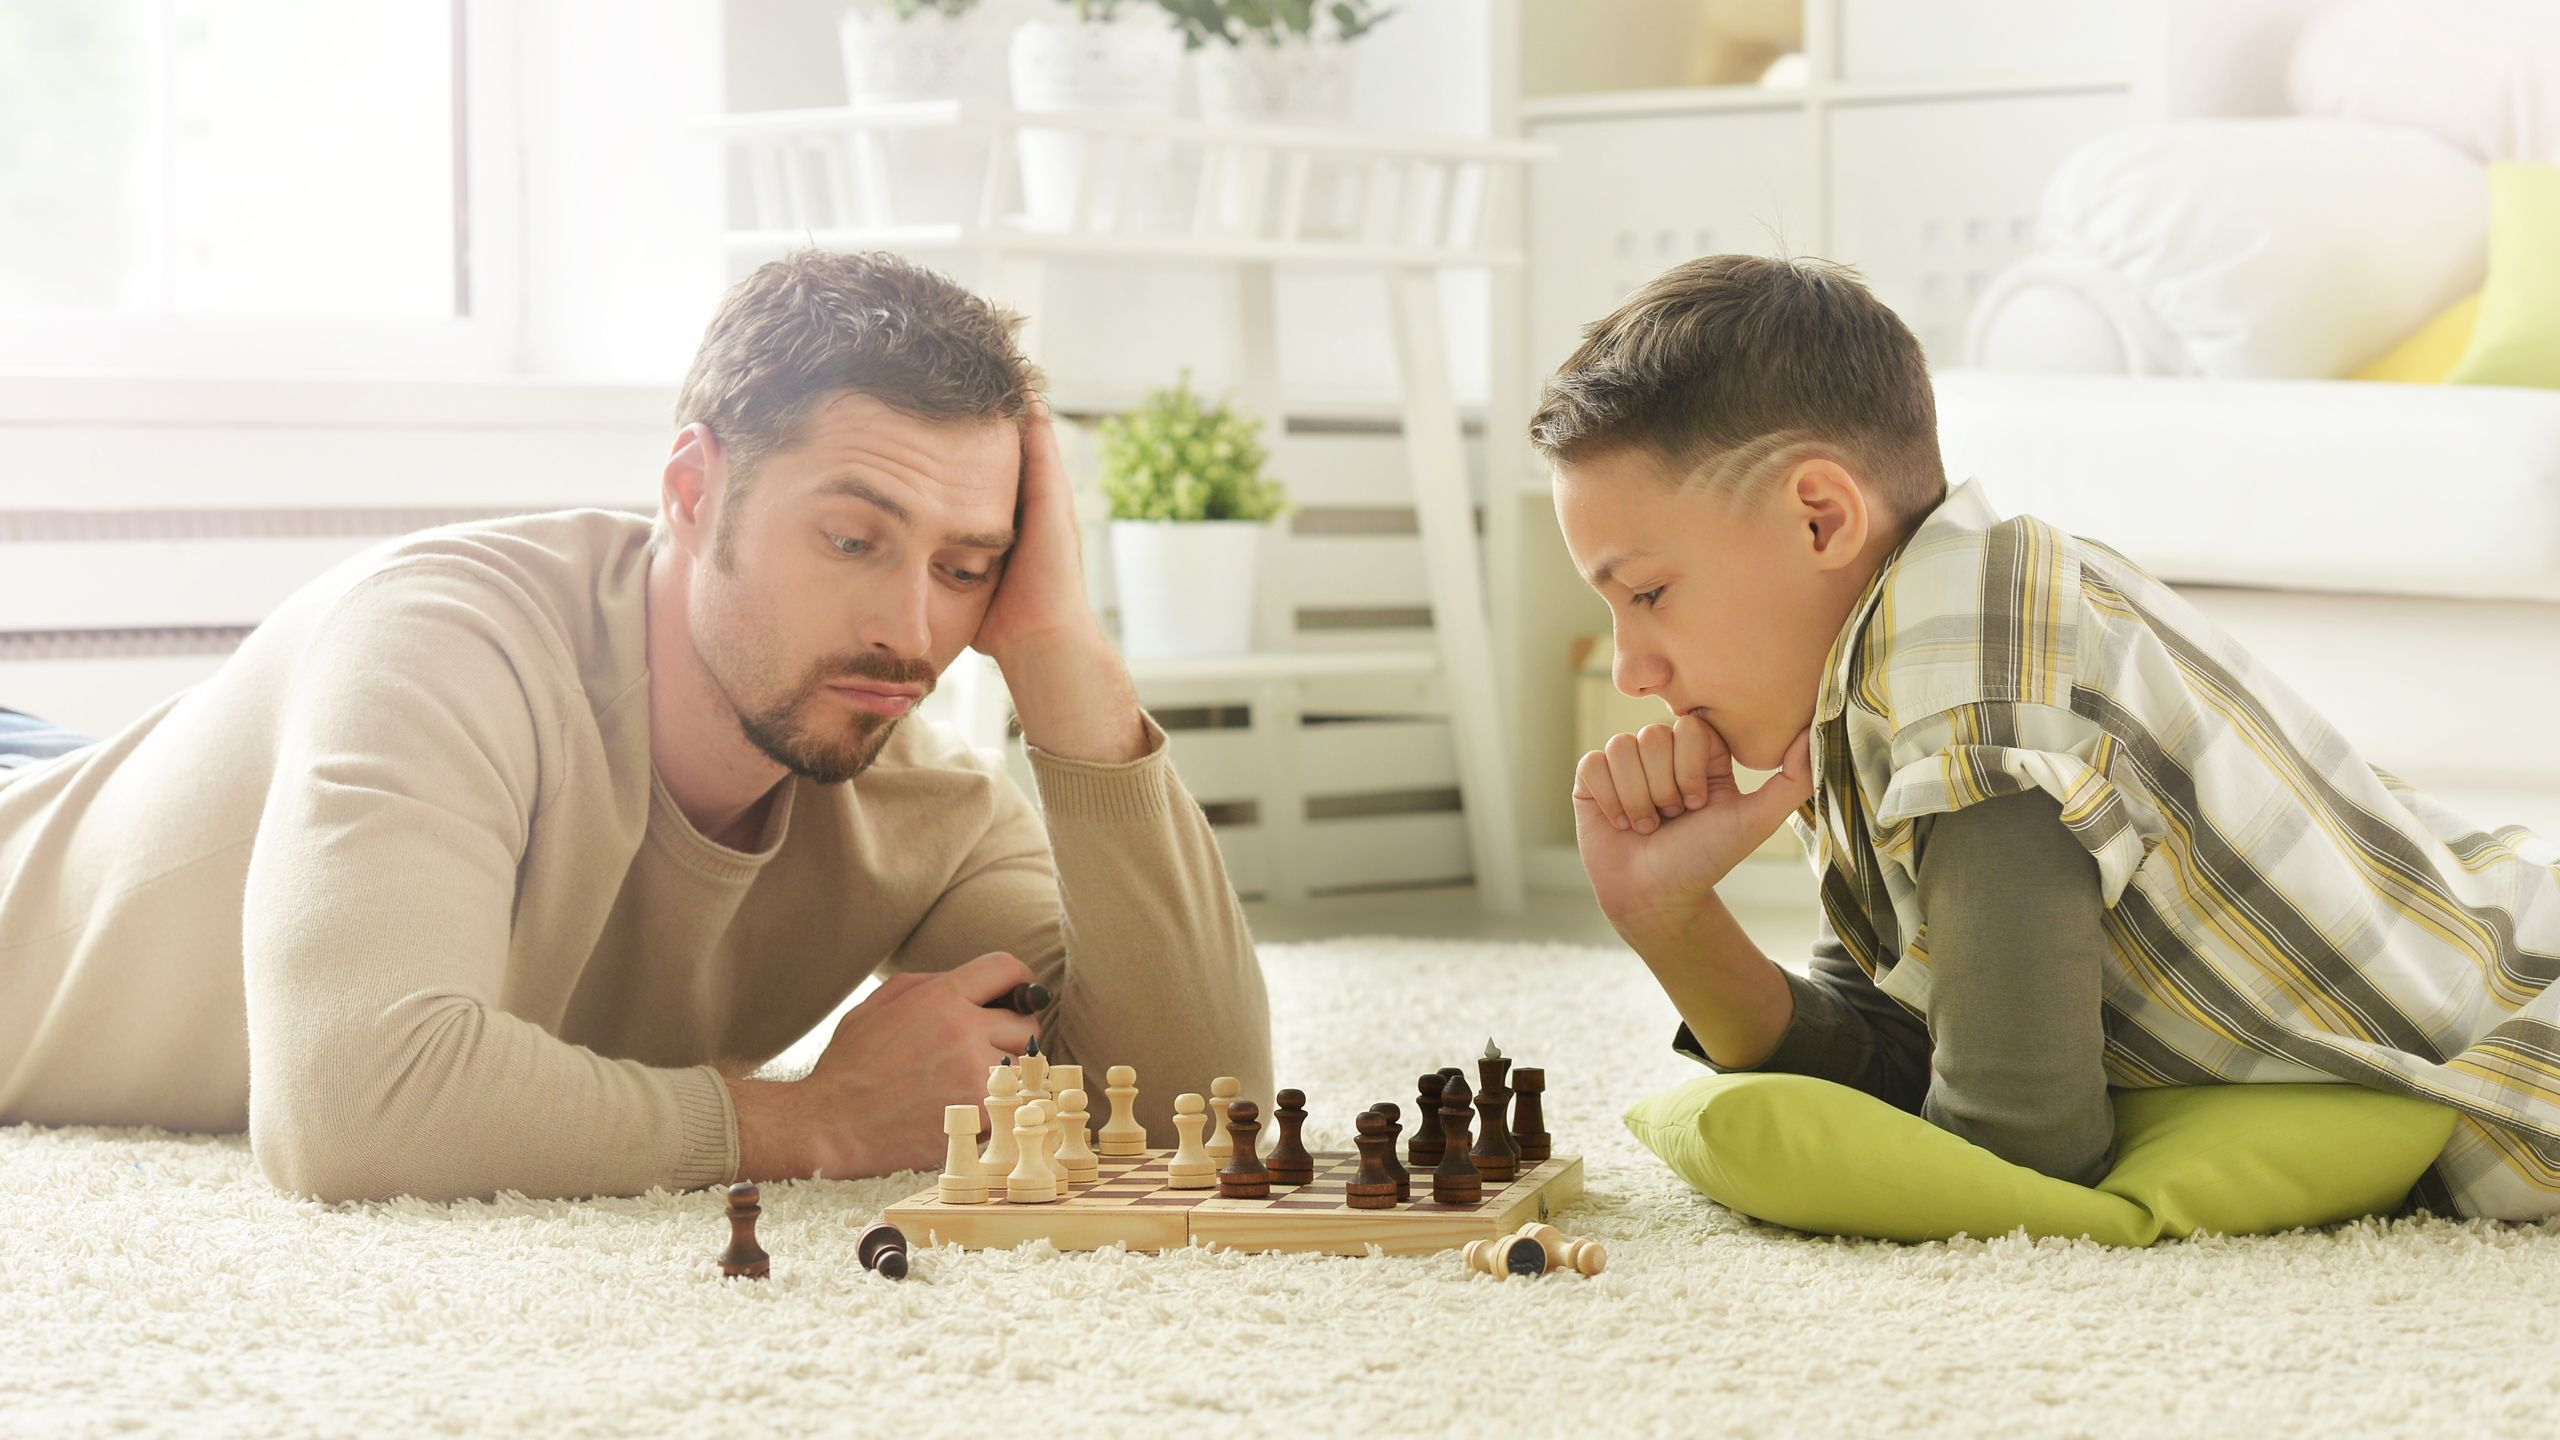 Stay Sharp With 6 Easy Brain Games